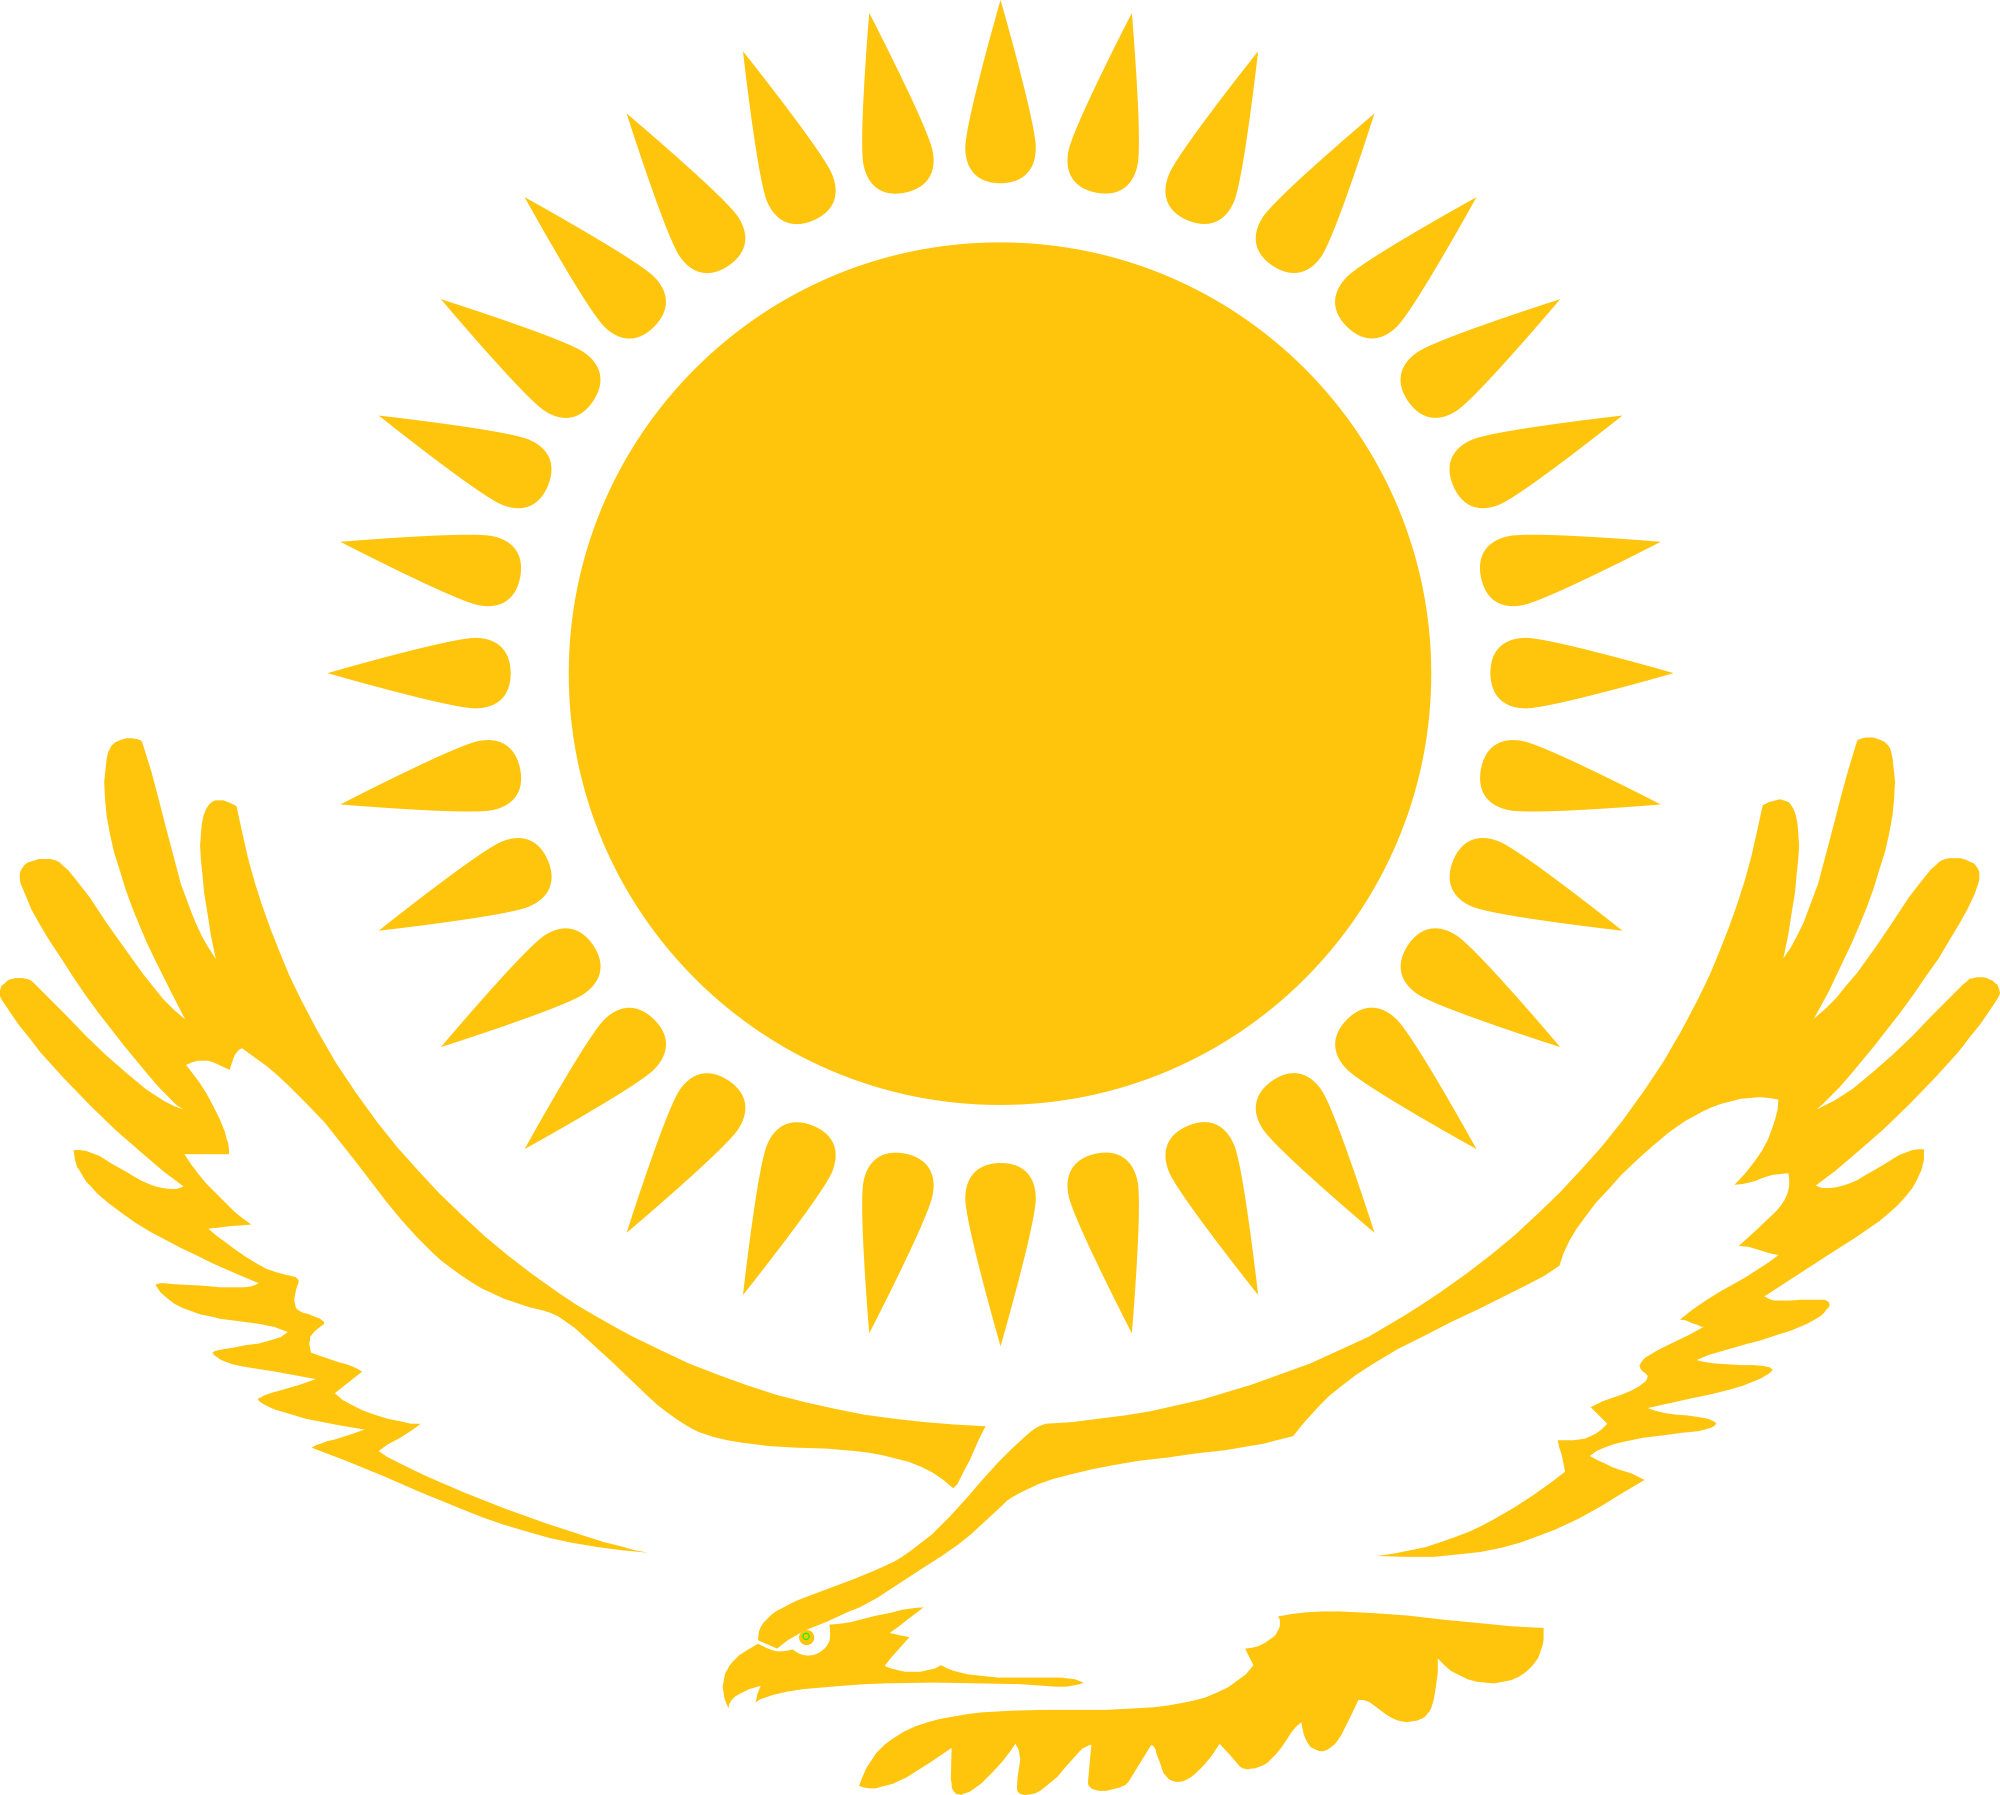 Kazakhstan eagle sun clipart image free stock File:Eagle and sun from the Kazakh flag.svg - Wikimedia Commons image free stock